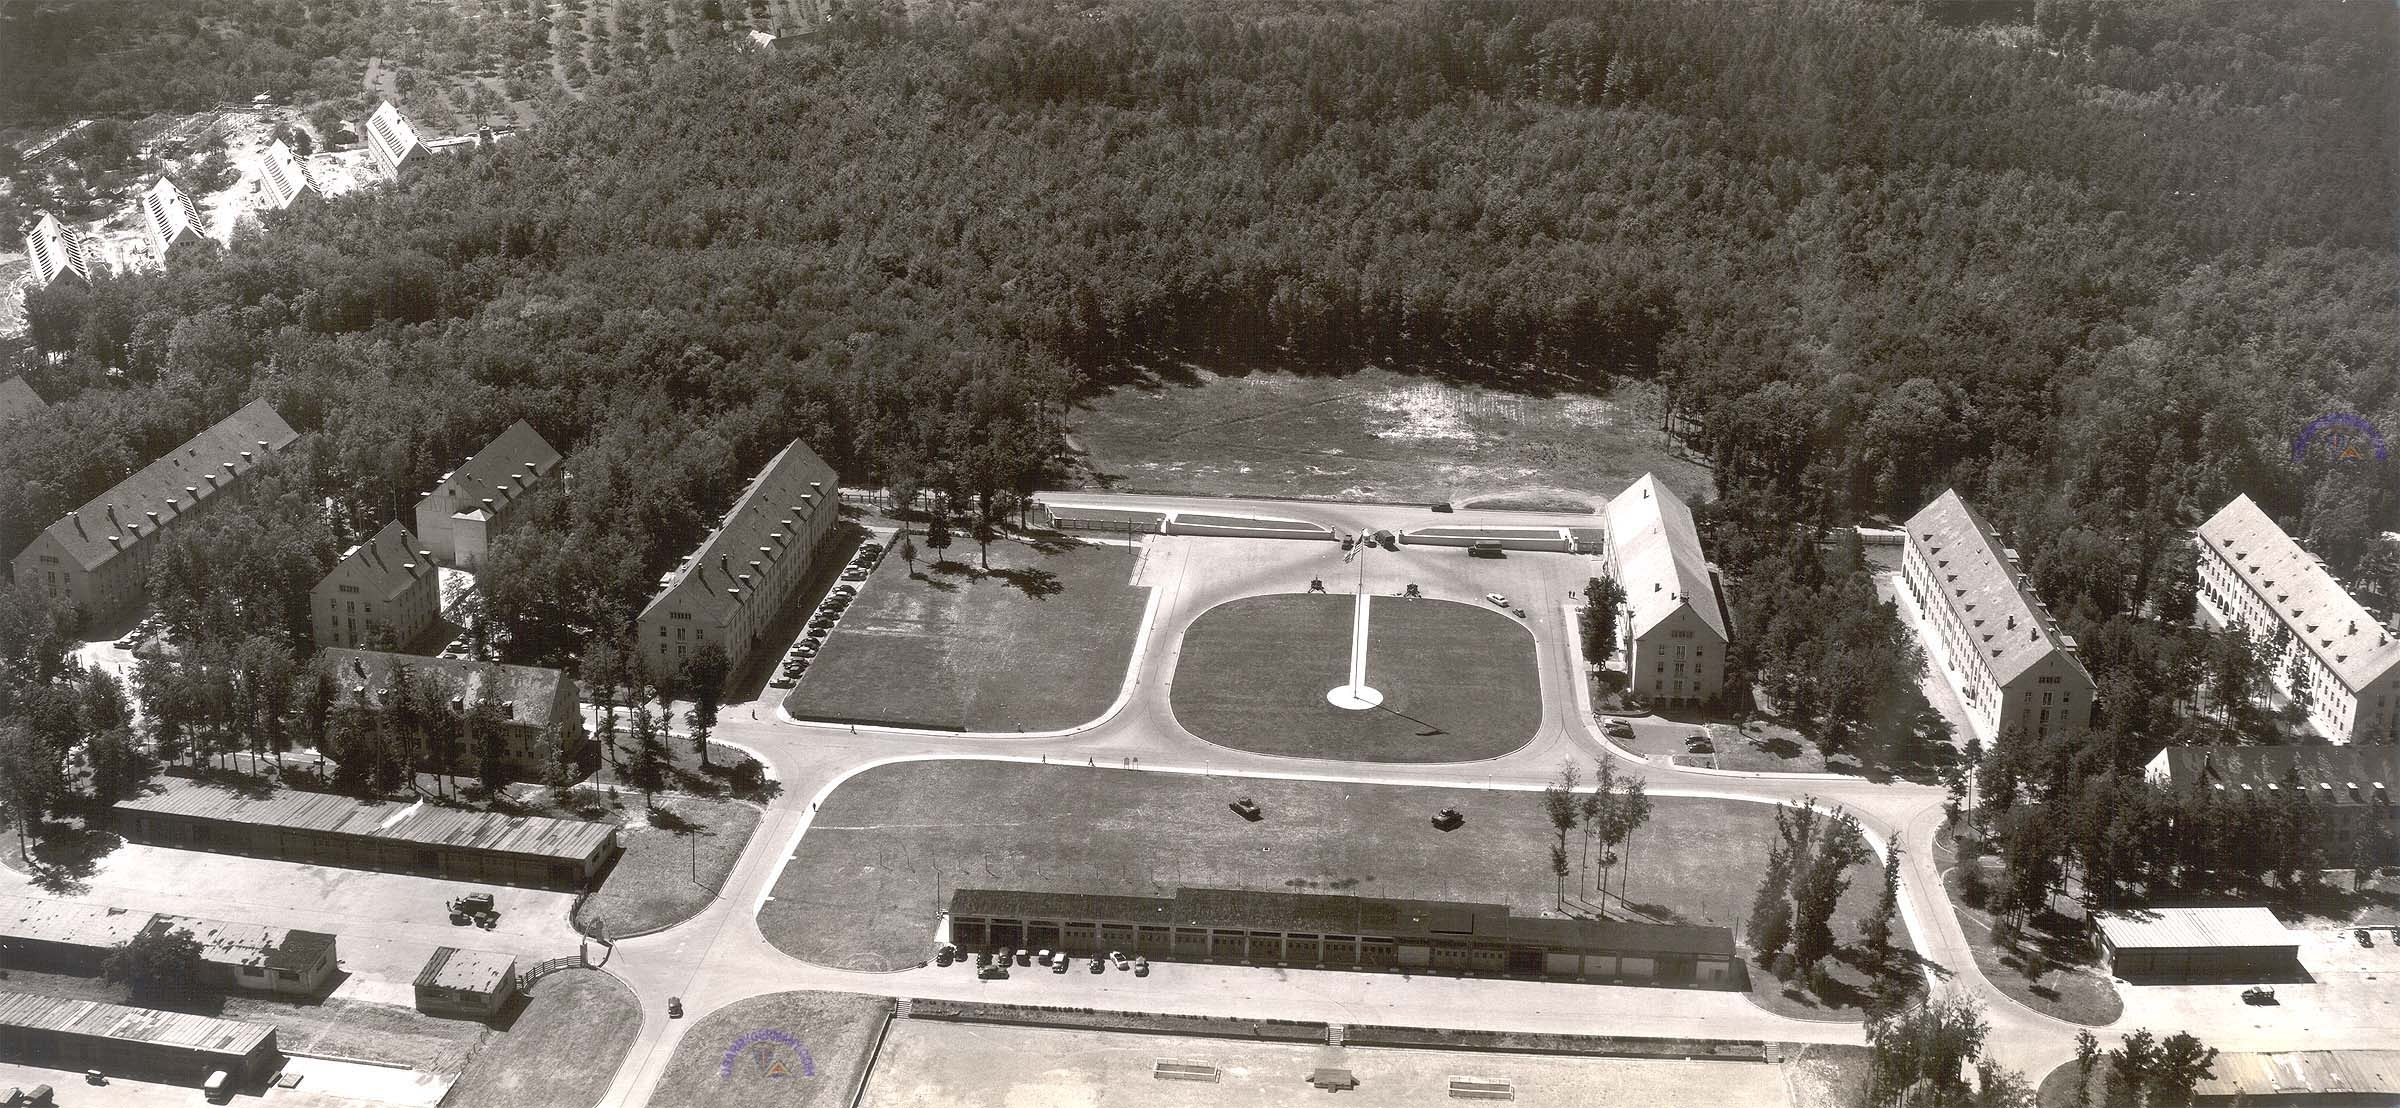 Usareur Aerial Photos - Patch Bks 1950 intended for Patch Barracks Map Stuttgart Germany